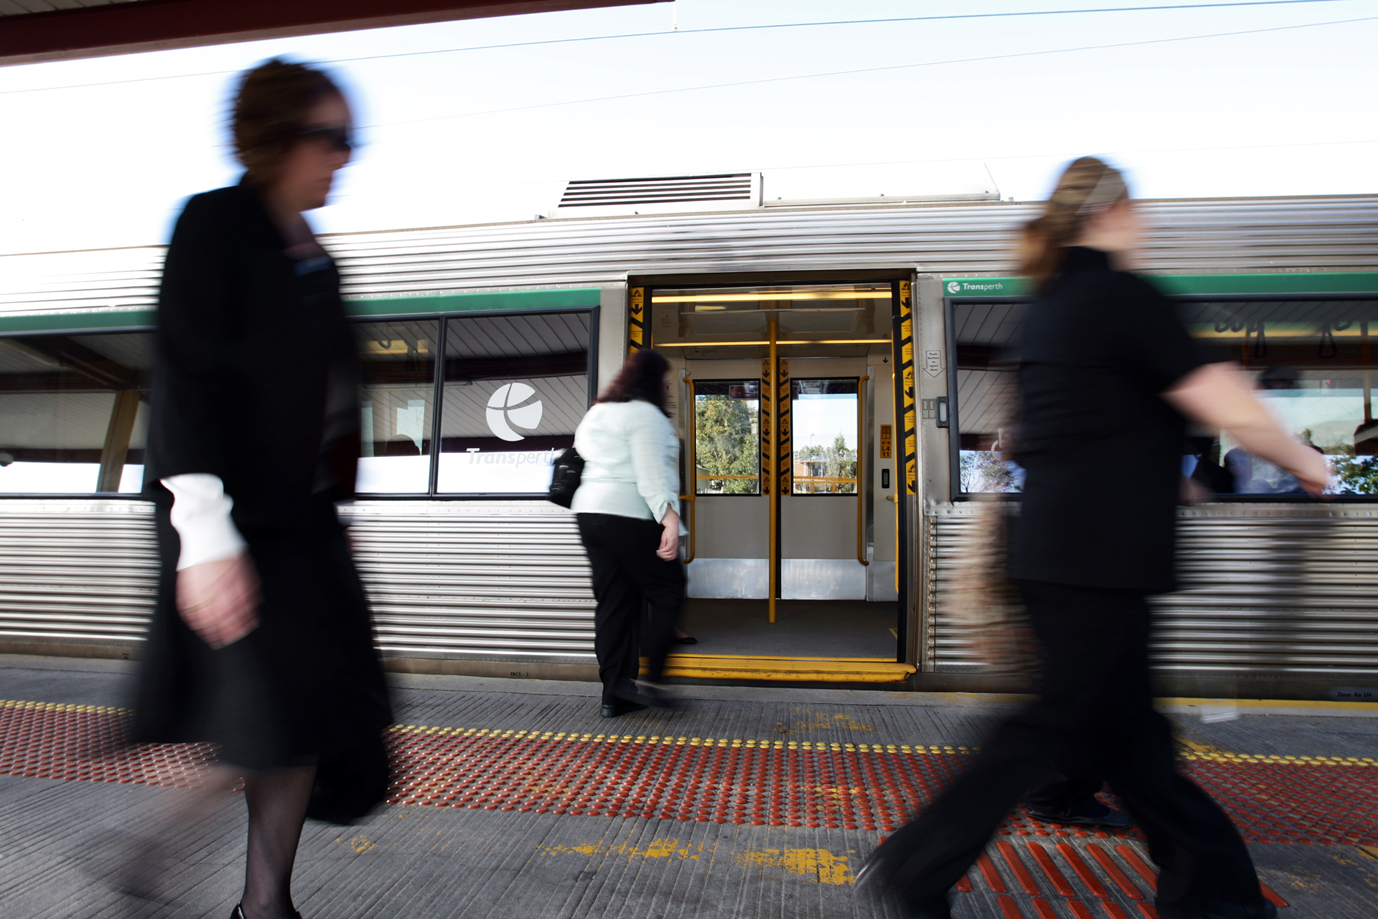 Night train services suspended from Whitfords to Perth Underground for maintenance